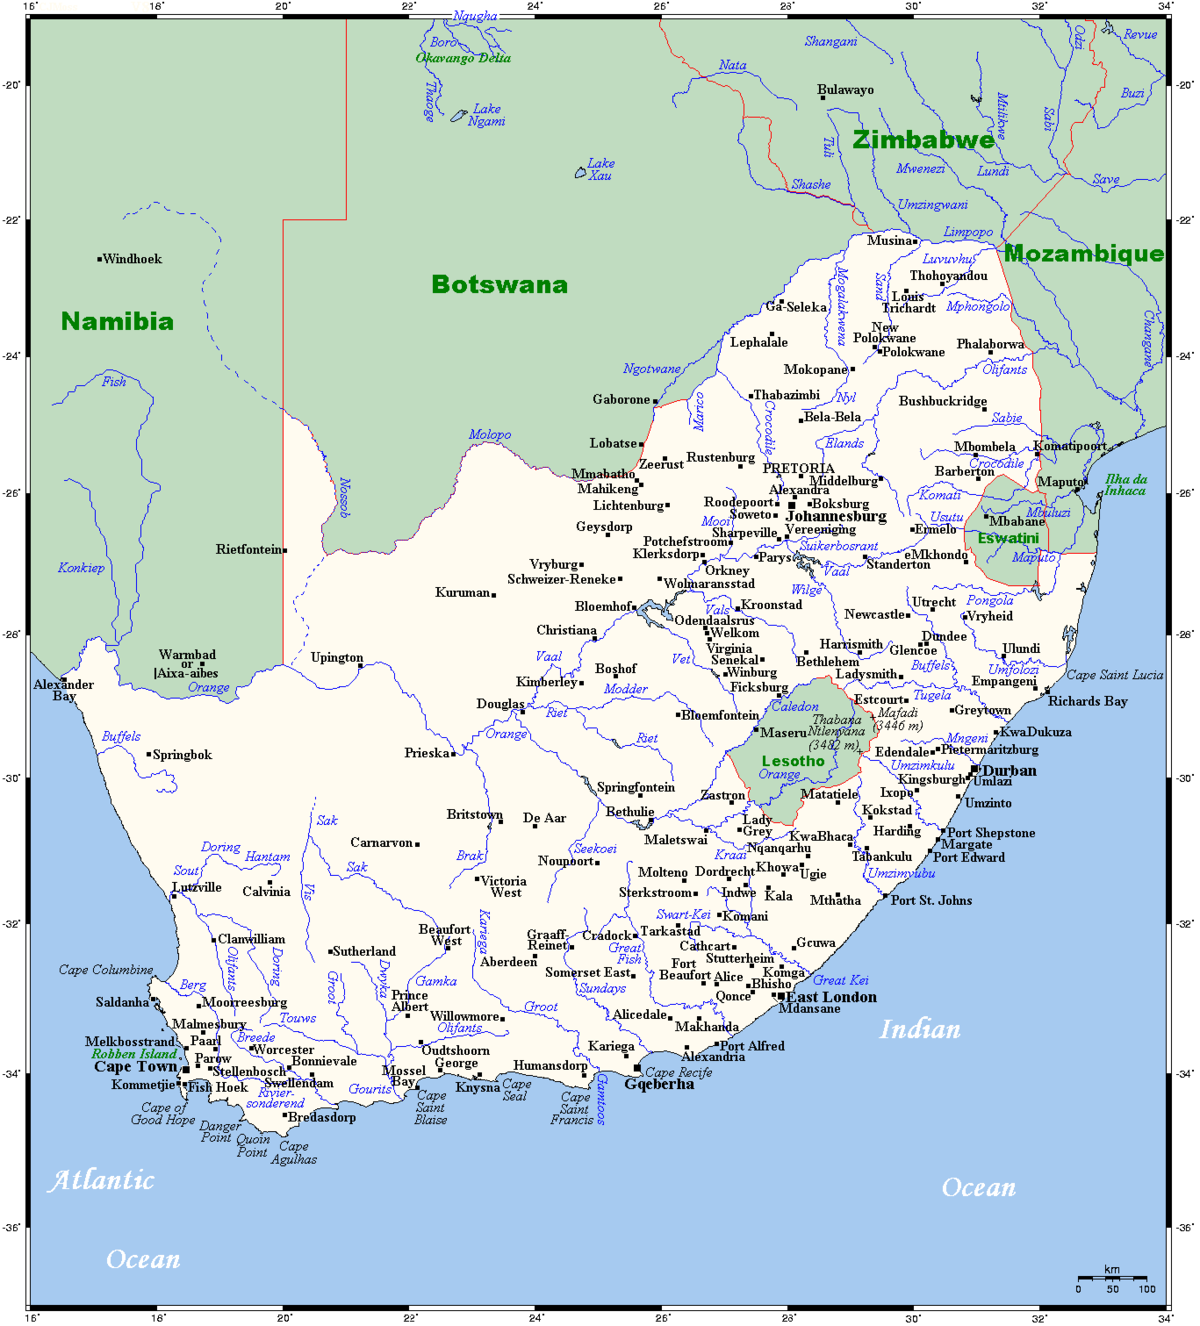 List Of Rivers Of South Africa Wikipedia - African rivers by length